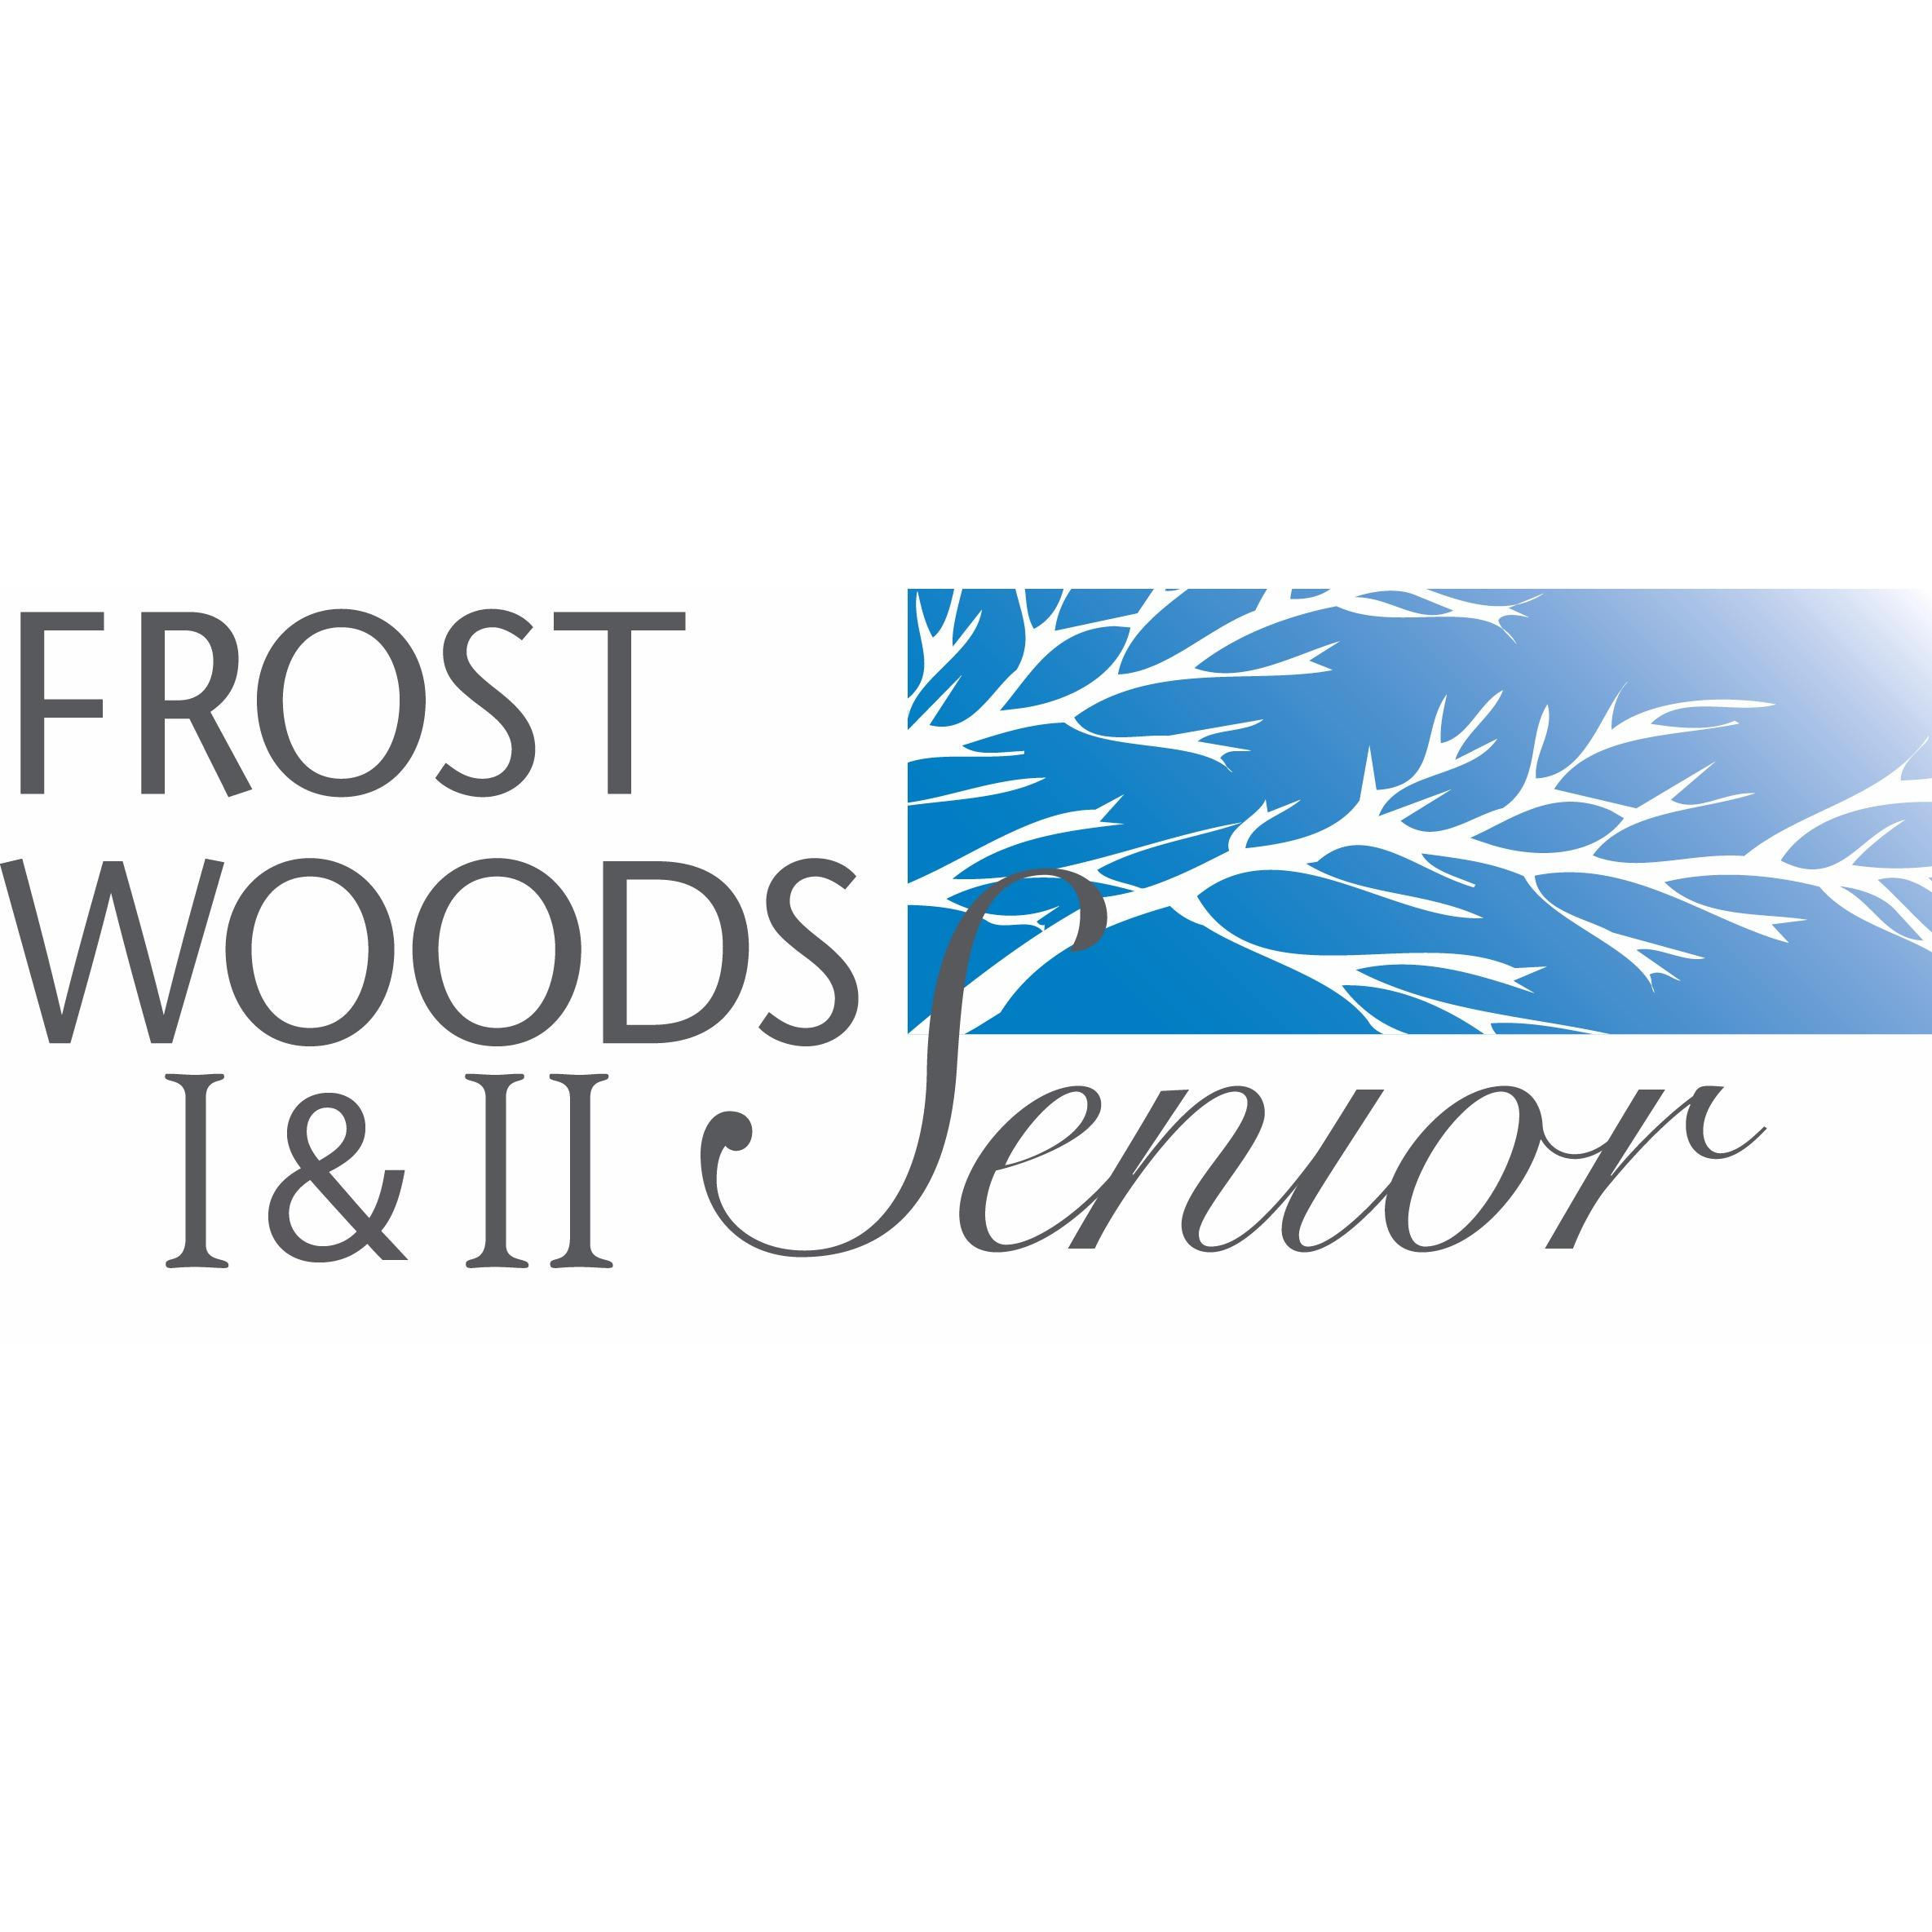 Frost Woods I & II Senior Apartments - Monona, WI 53716 - (608)516-4280 | ShowMeLocal.com